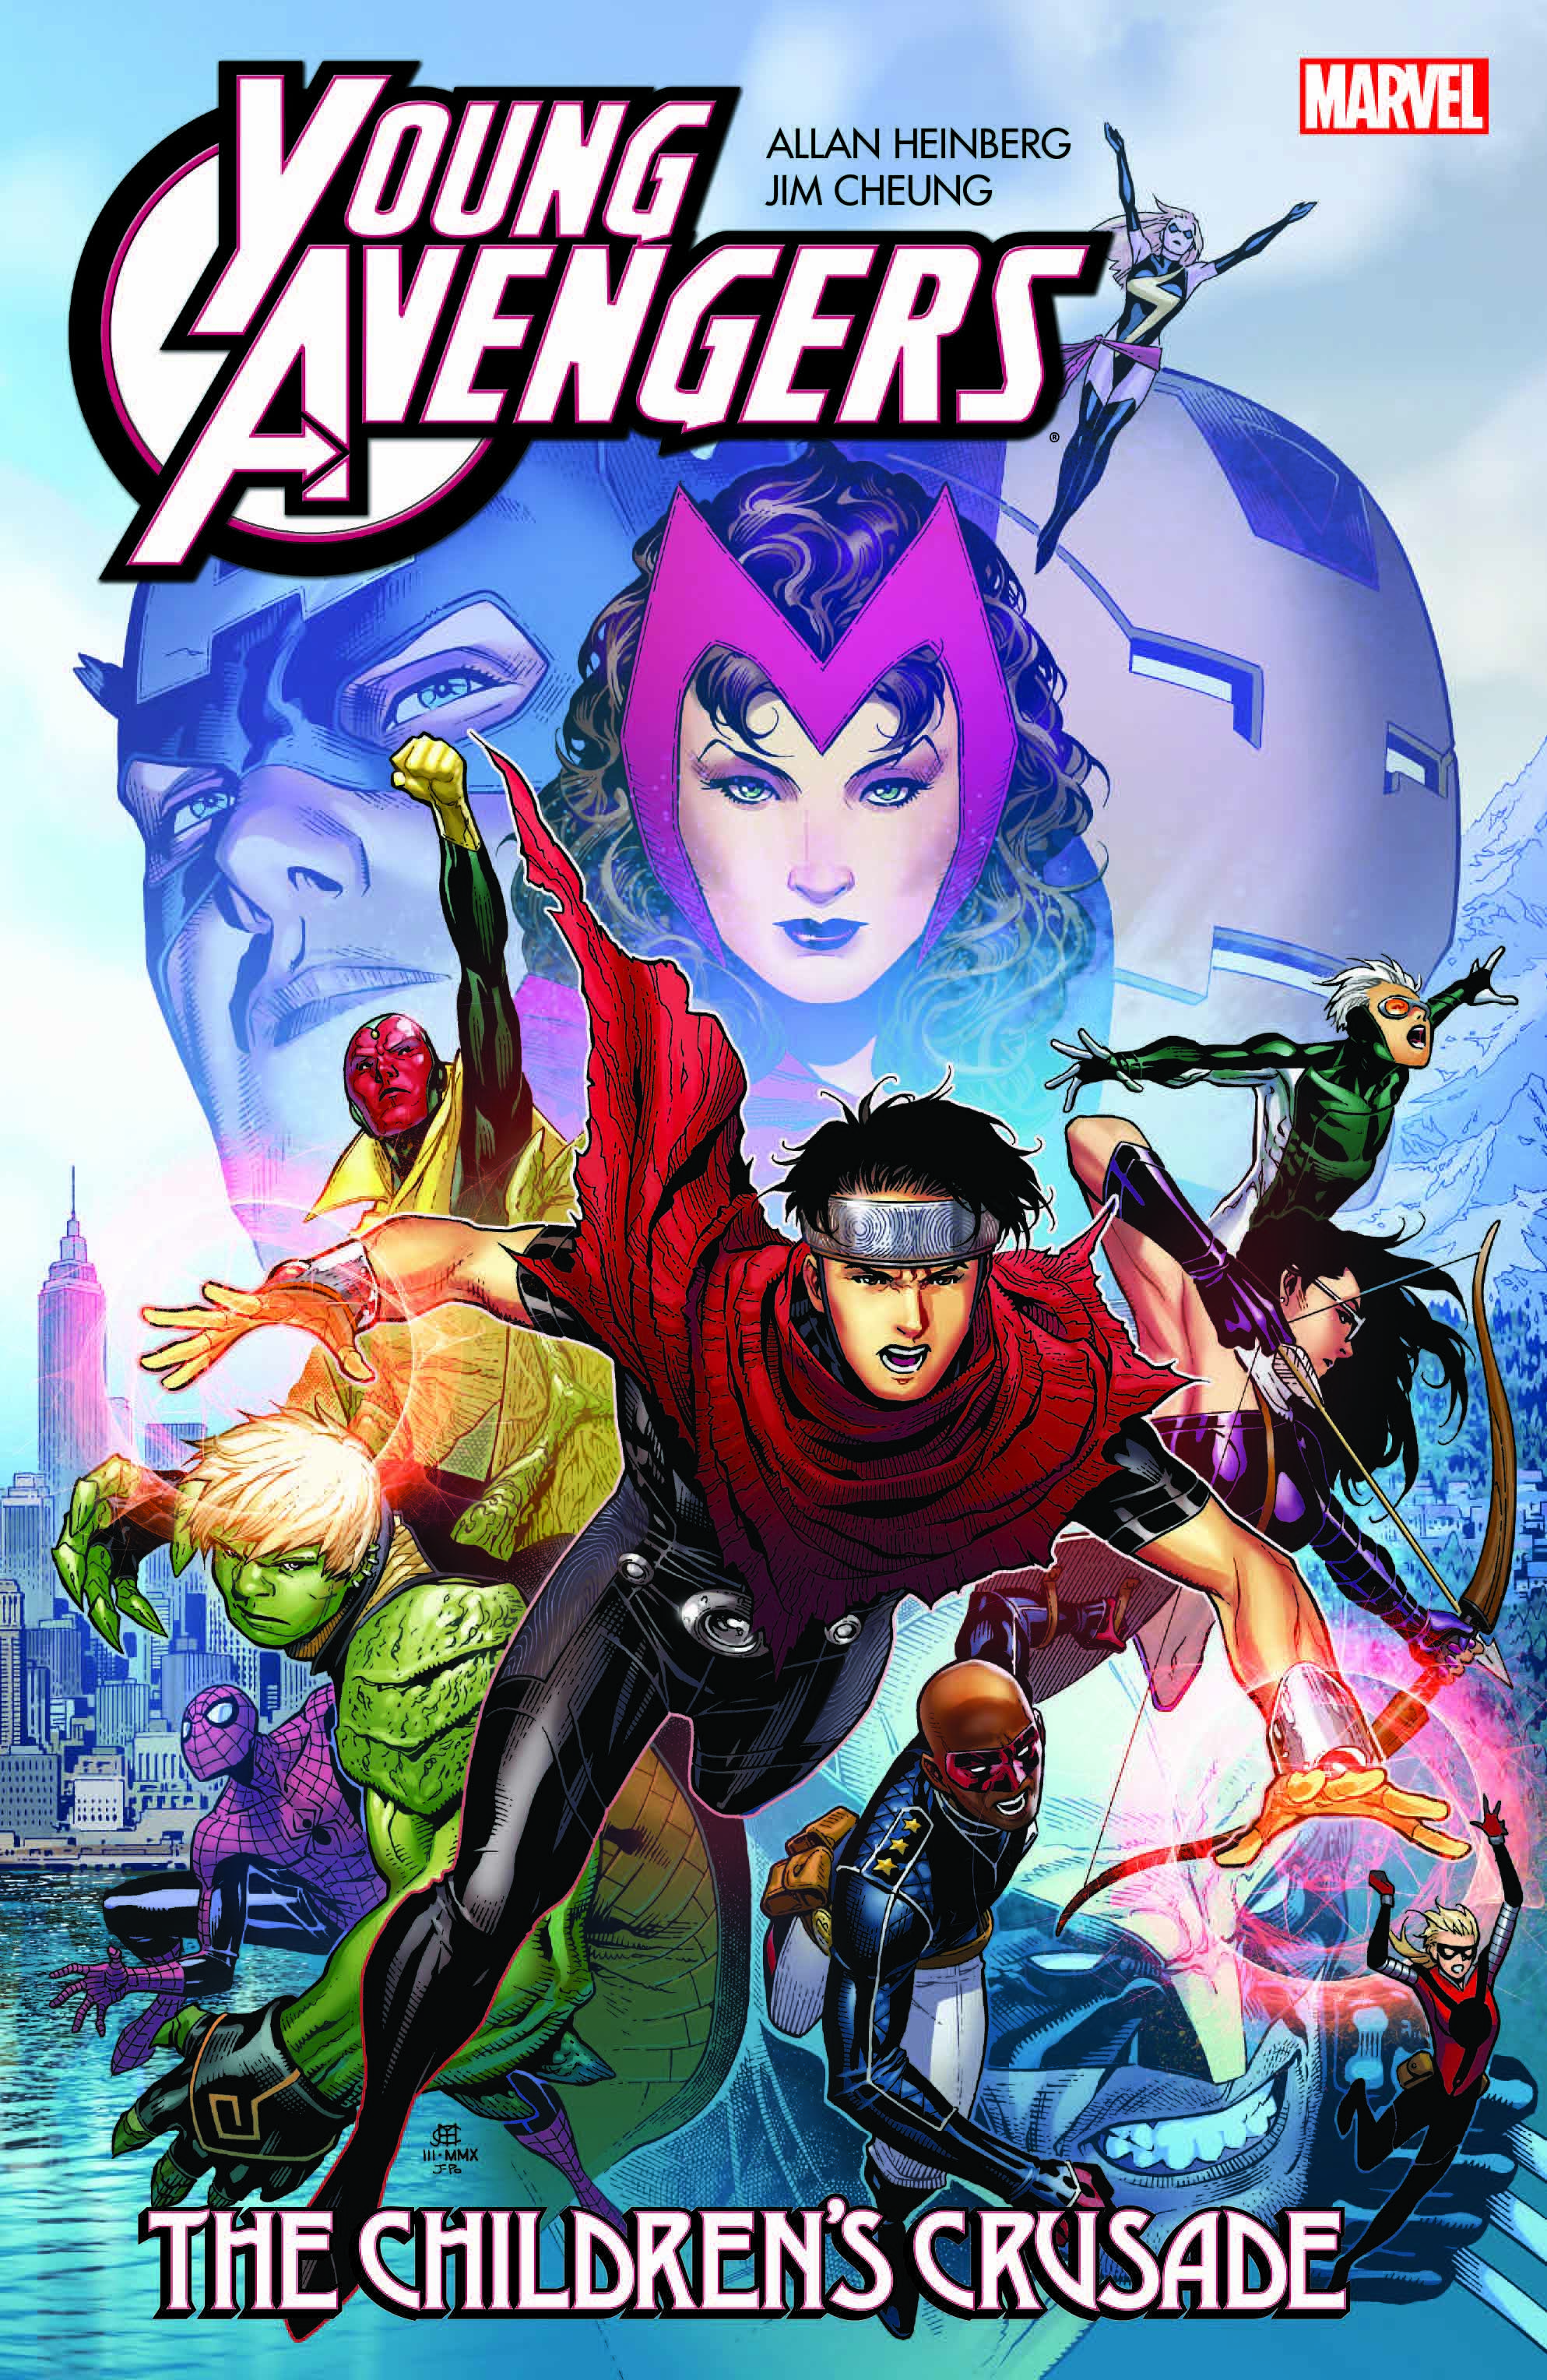 YOUNG AVENGERS BY ALLAN HEINBERG & JIM CHEUNG: THE CHILDREN'S CRUSADE TPB (Trade Paperback)